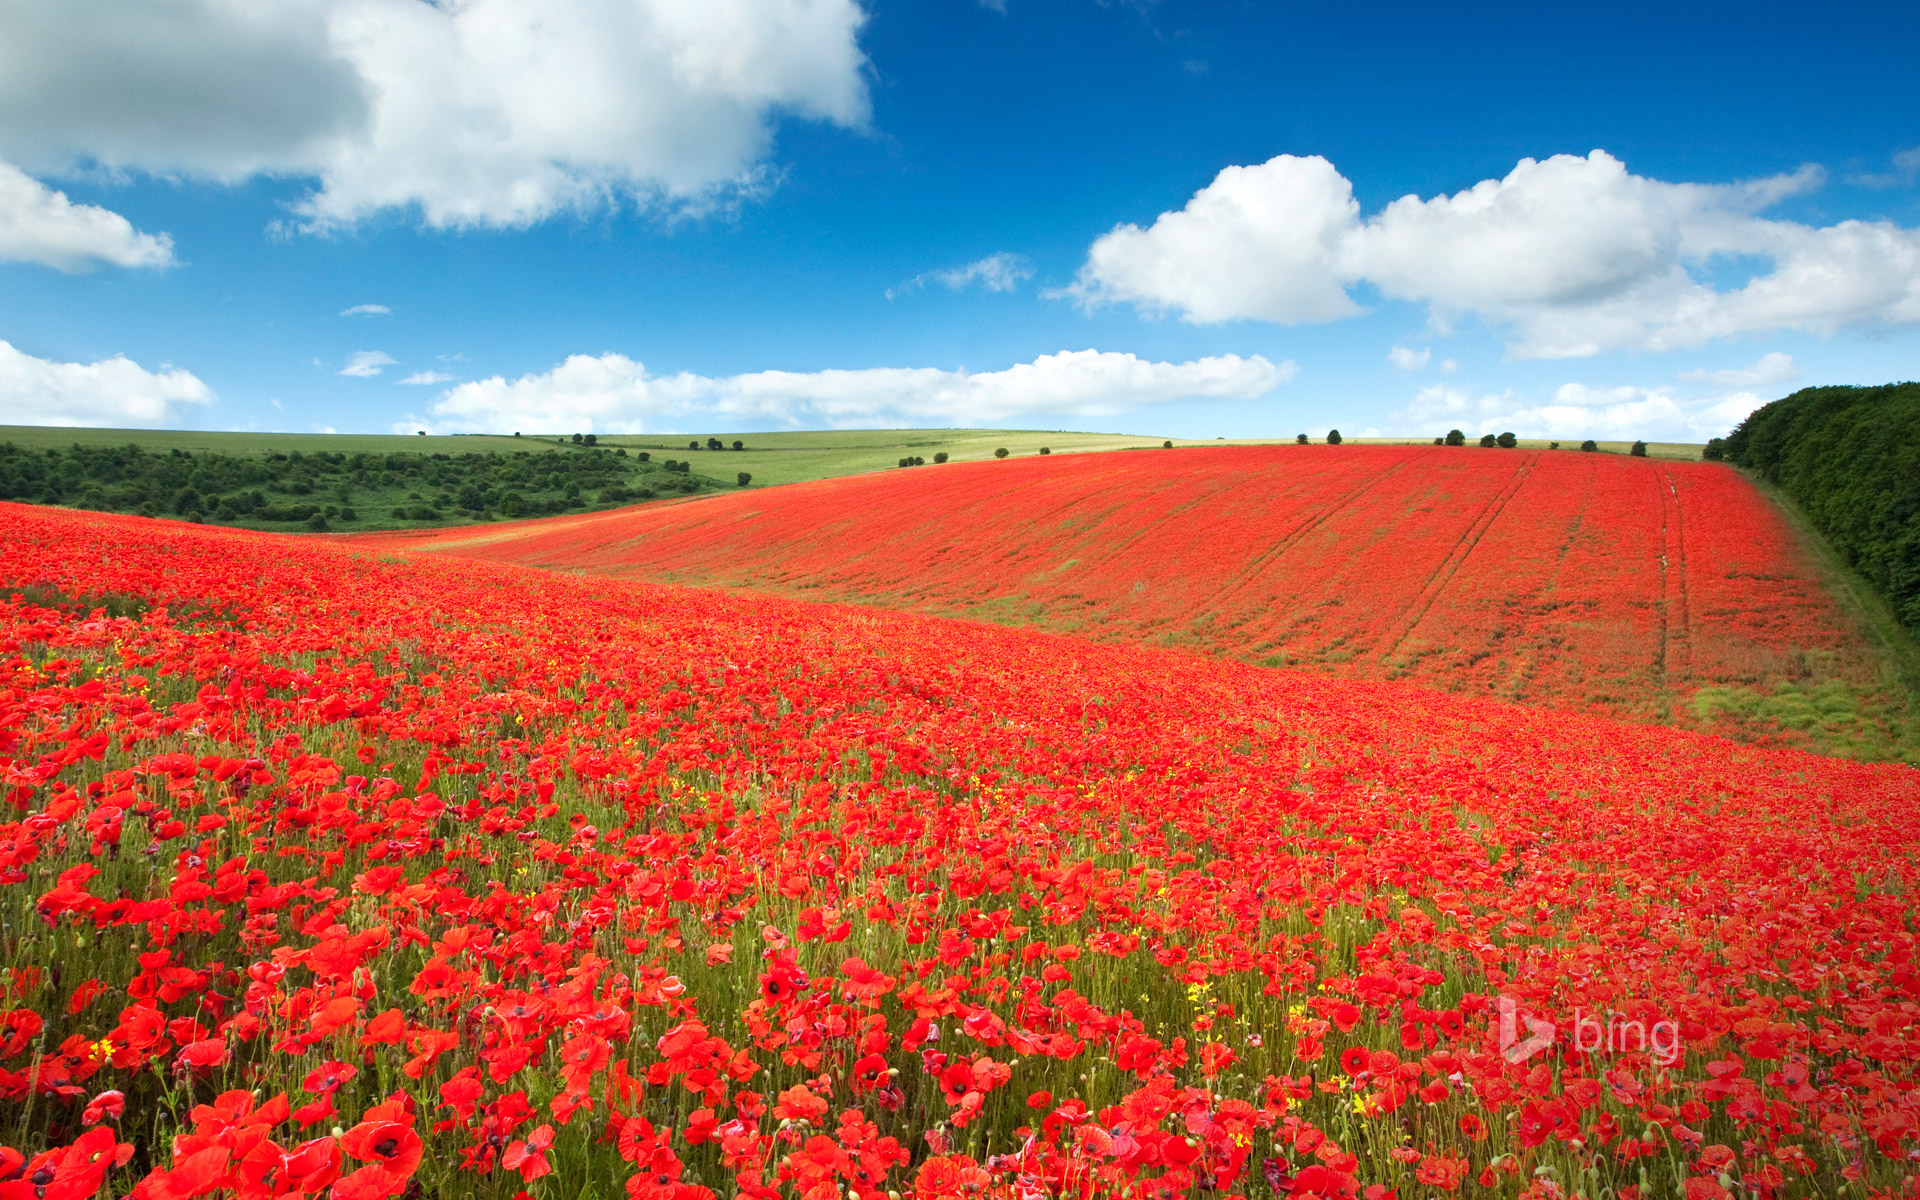 A field of poppies in the South Downs National Park near Brighton